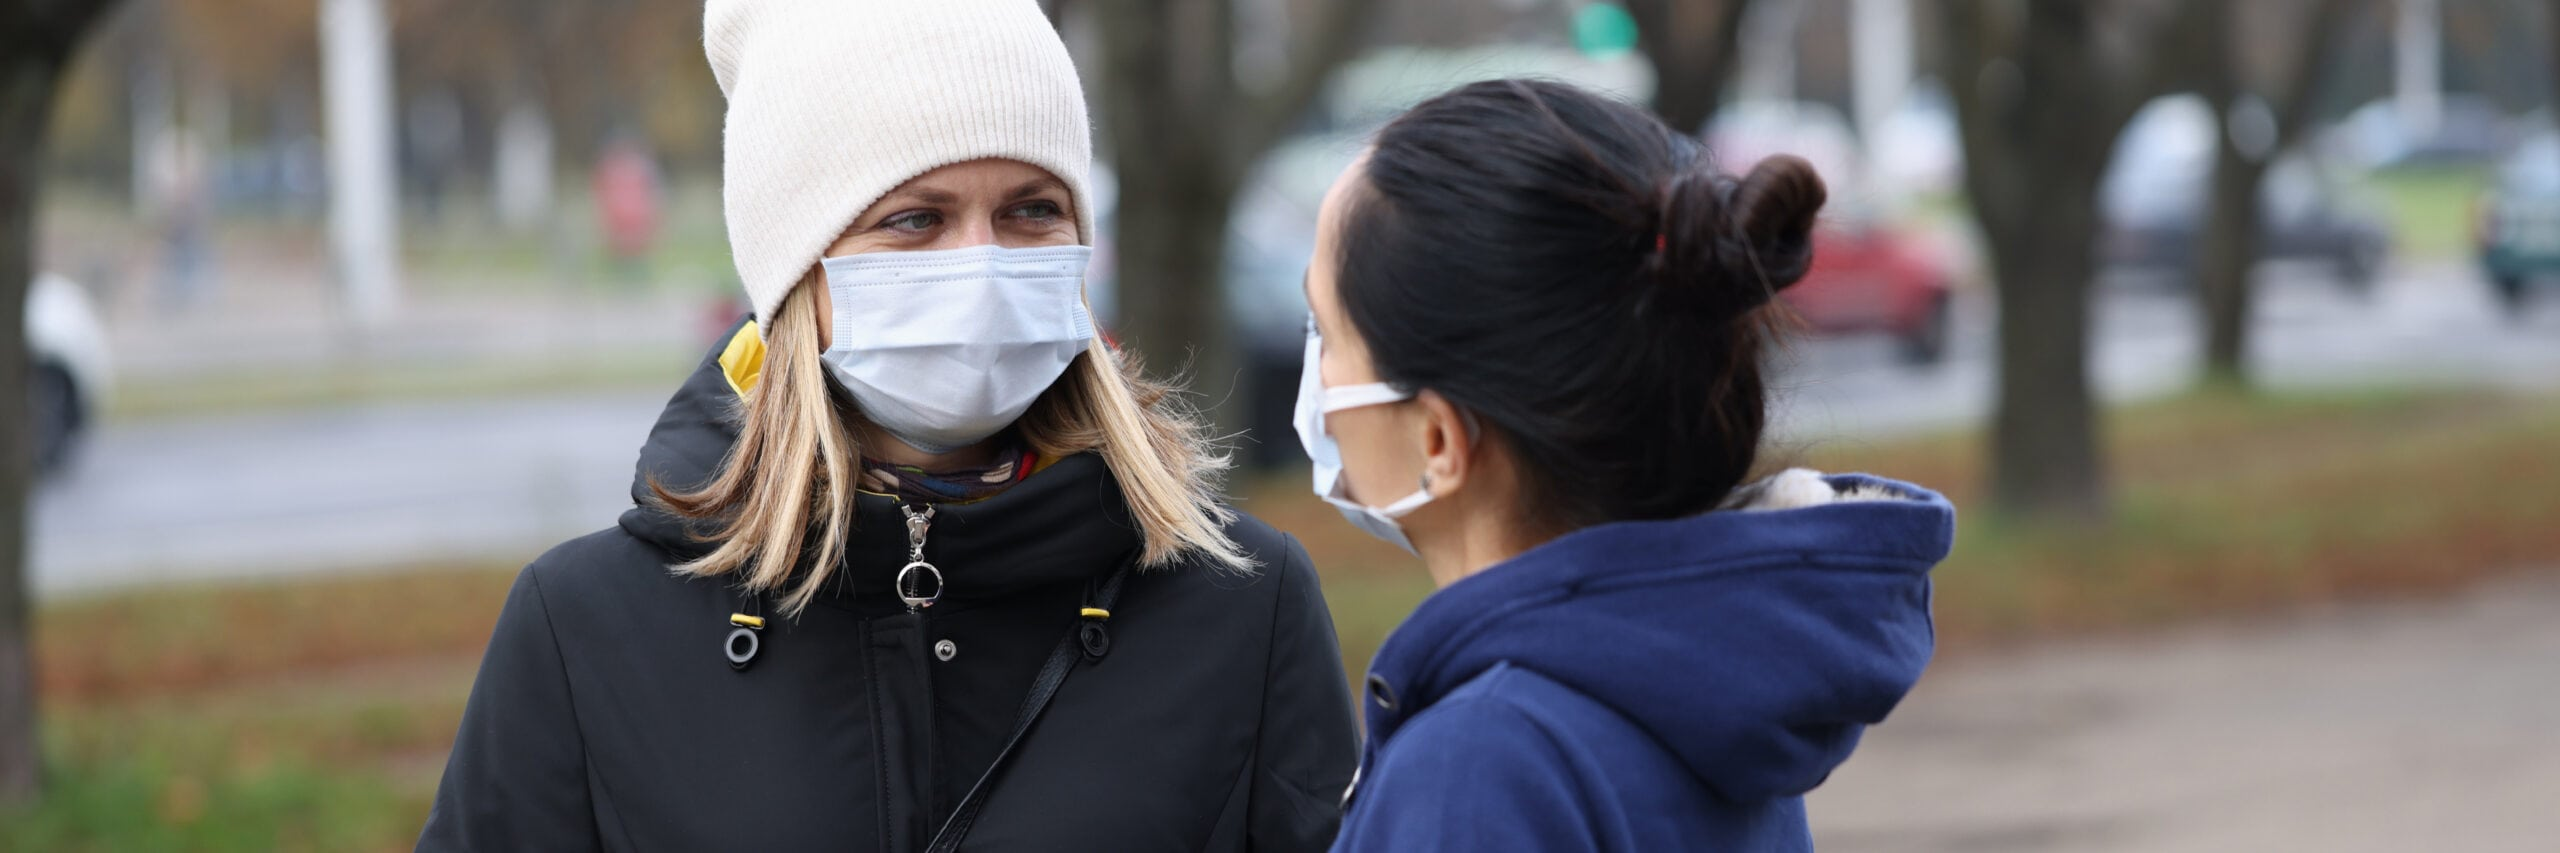 Two young women communicating in protective face masks outside